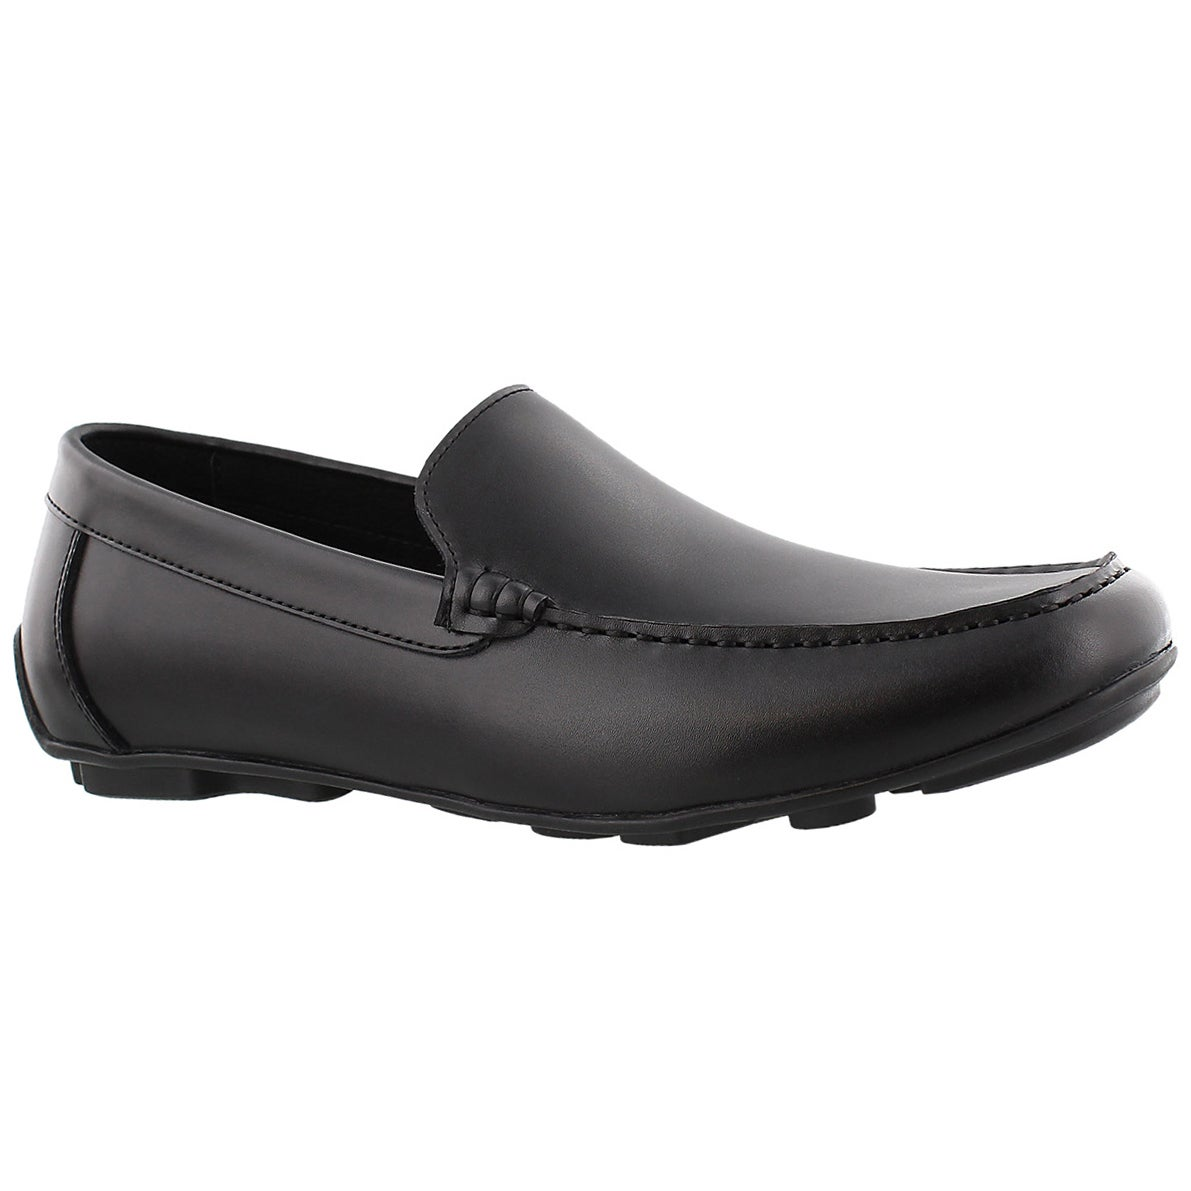 Men's JOSH black slip on dress loafers